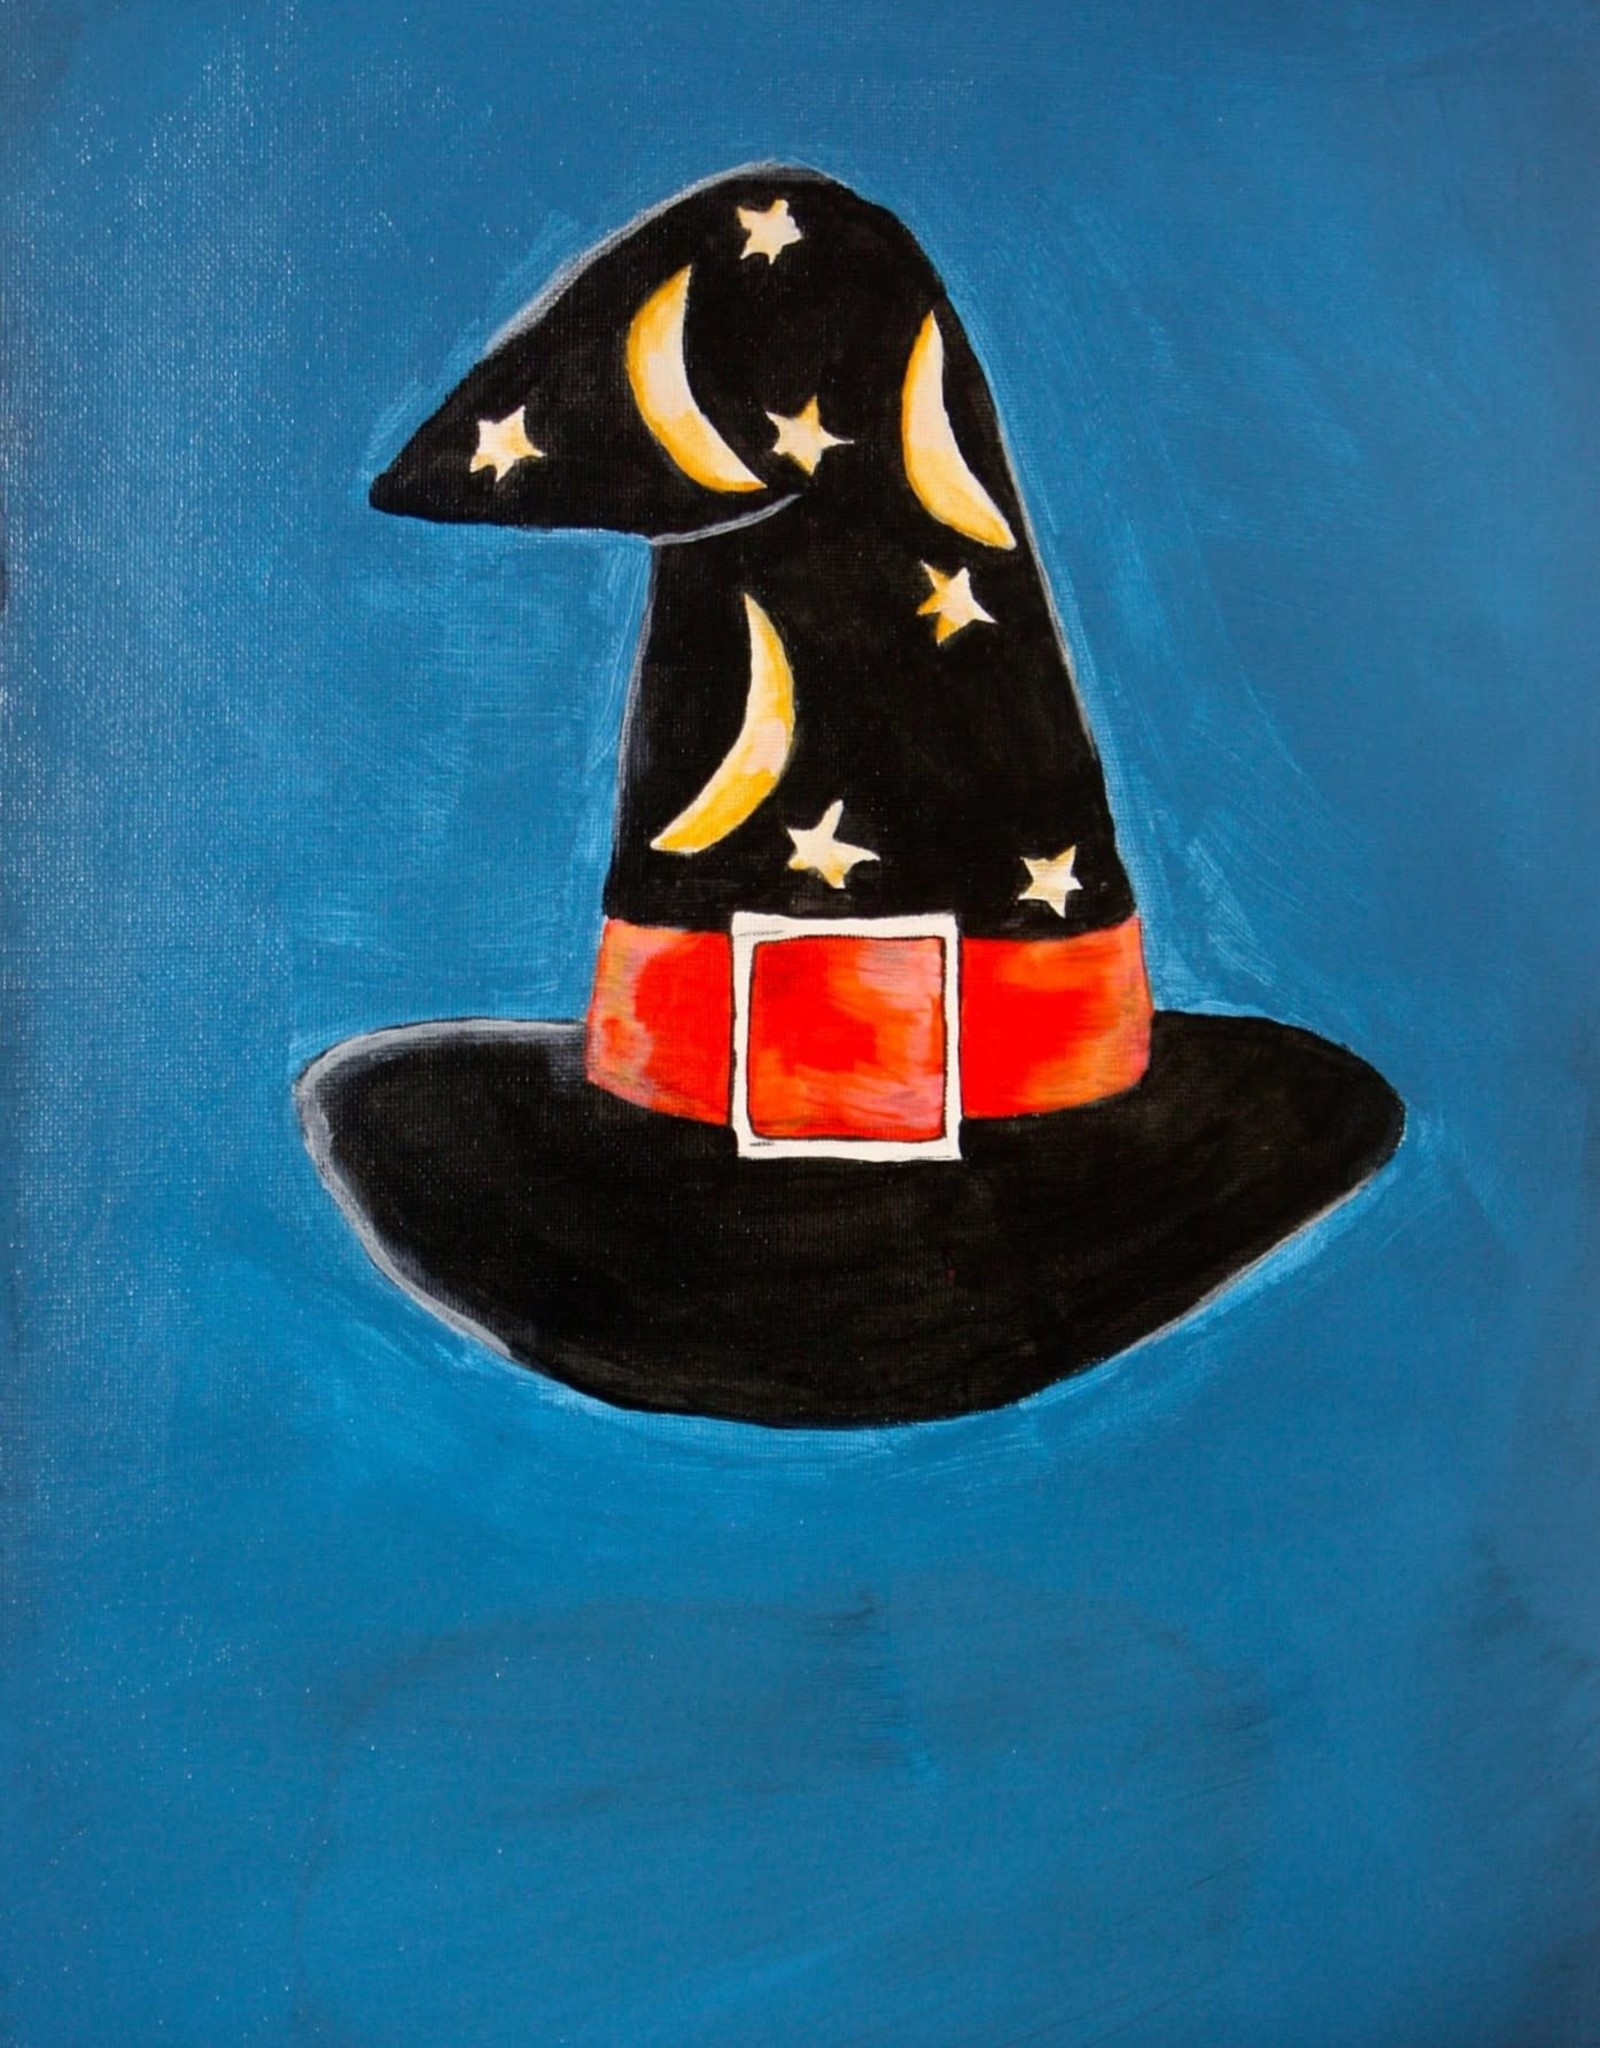 Melissa K Art Class: Witches Hat Sun Oct 17 11:00am to 12:00 pm